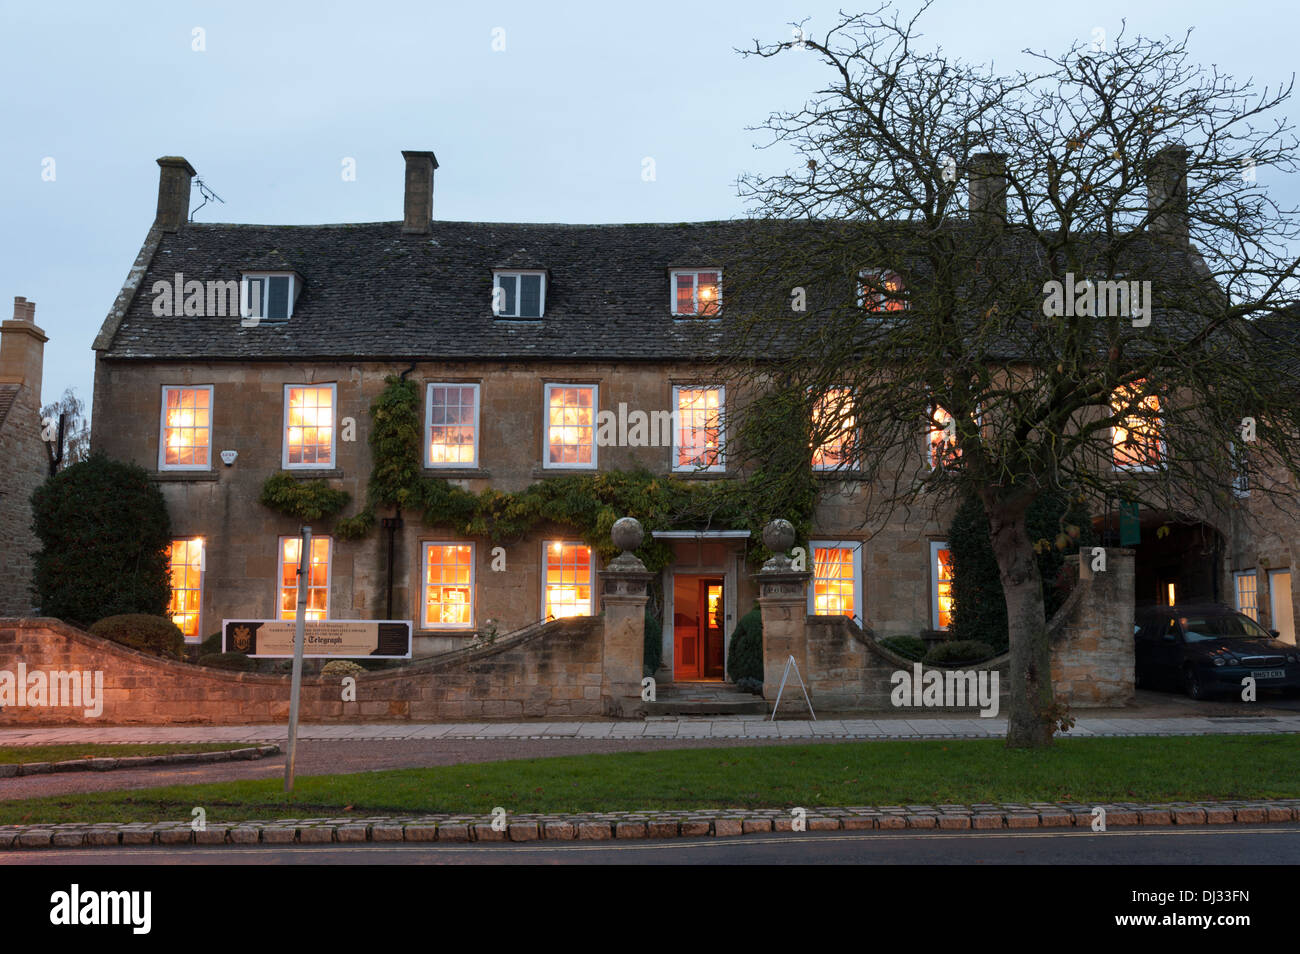 Haynes fine art art gallery, Broadway, Cotswolds, UK at dusk - Stock Image